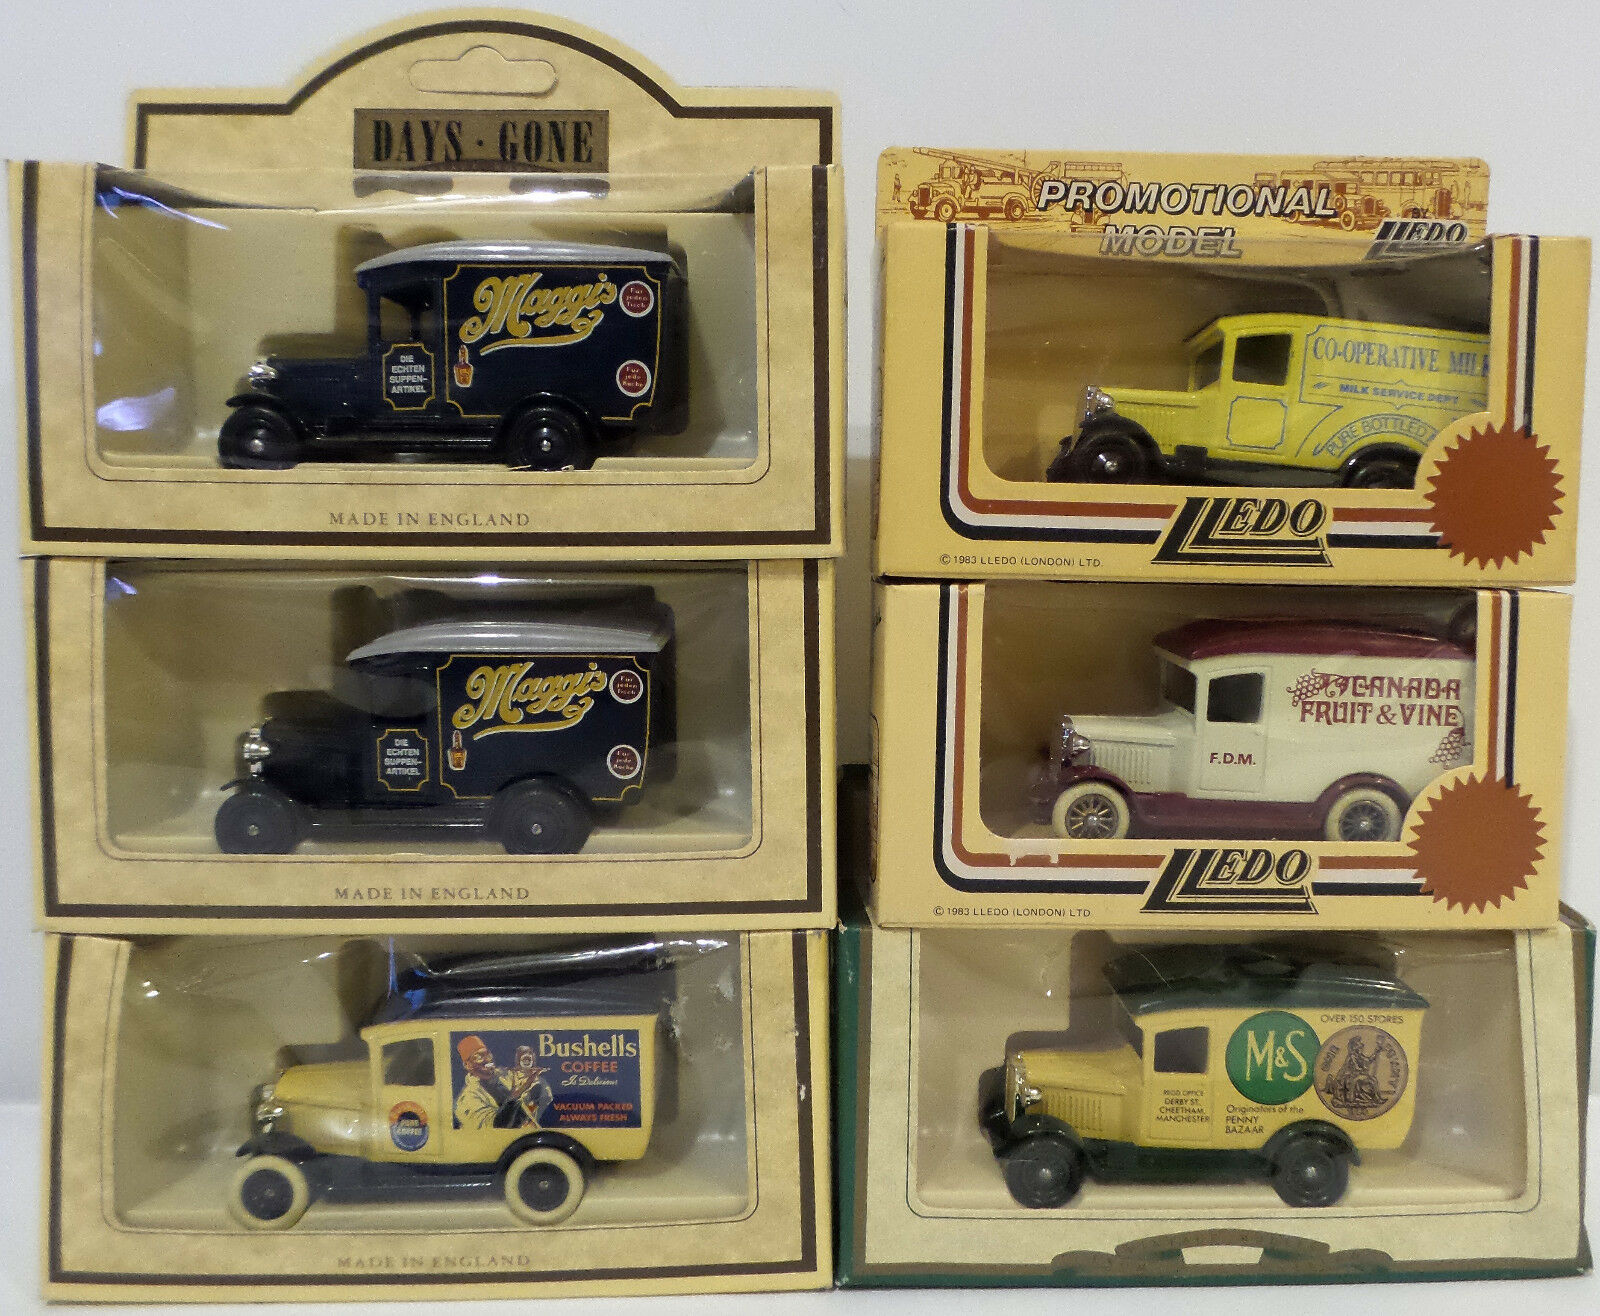 VEHICLES   SET OF 6 1934 CHEVROLET DELIVERY VANS MADE BY LLEDO (DT) 143